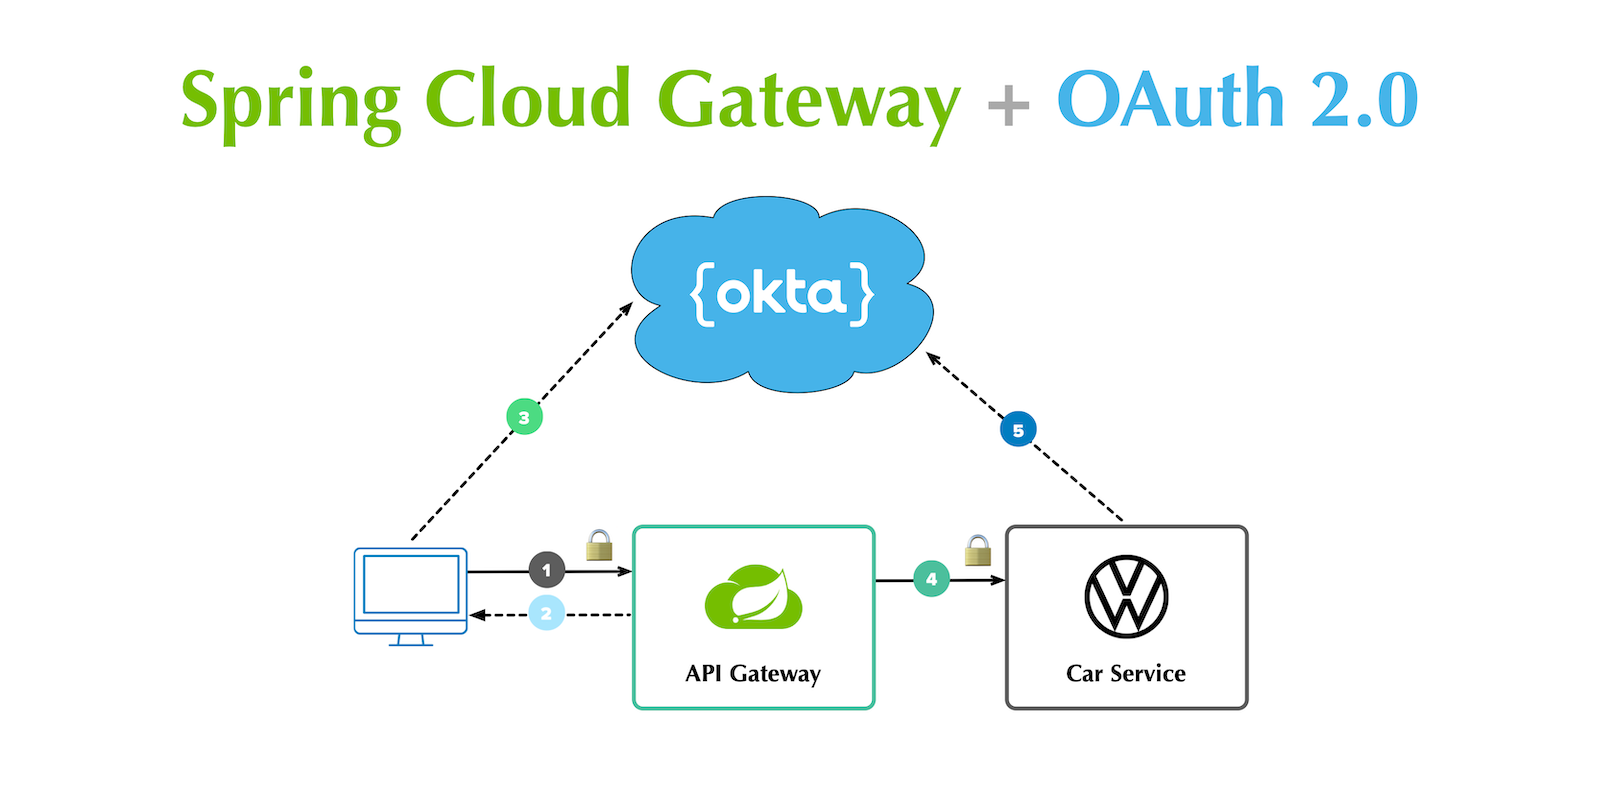 with Spring Cloud Gateway